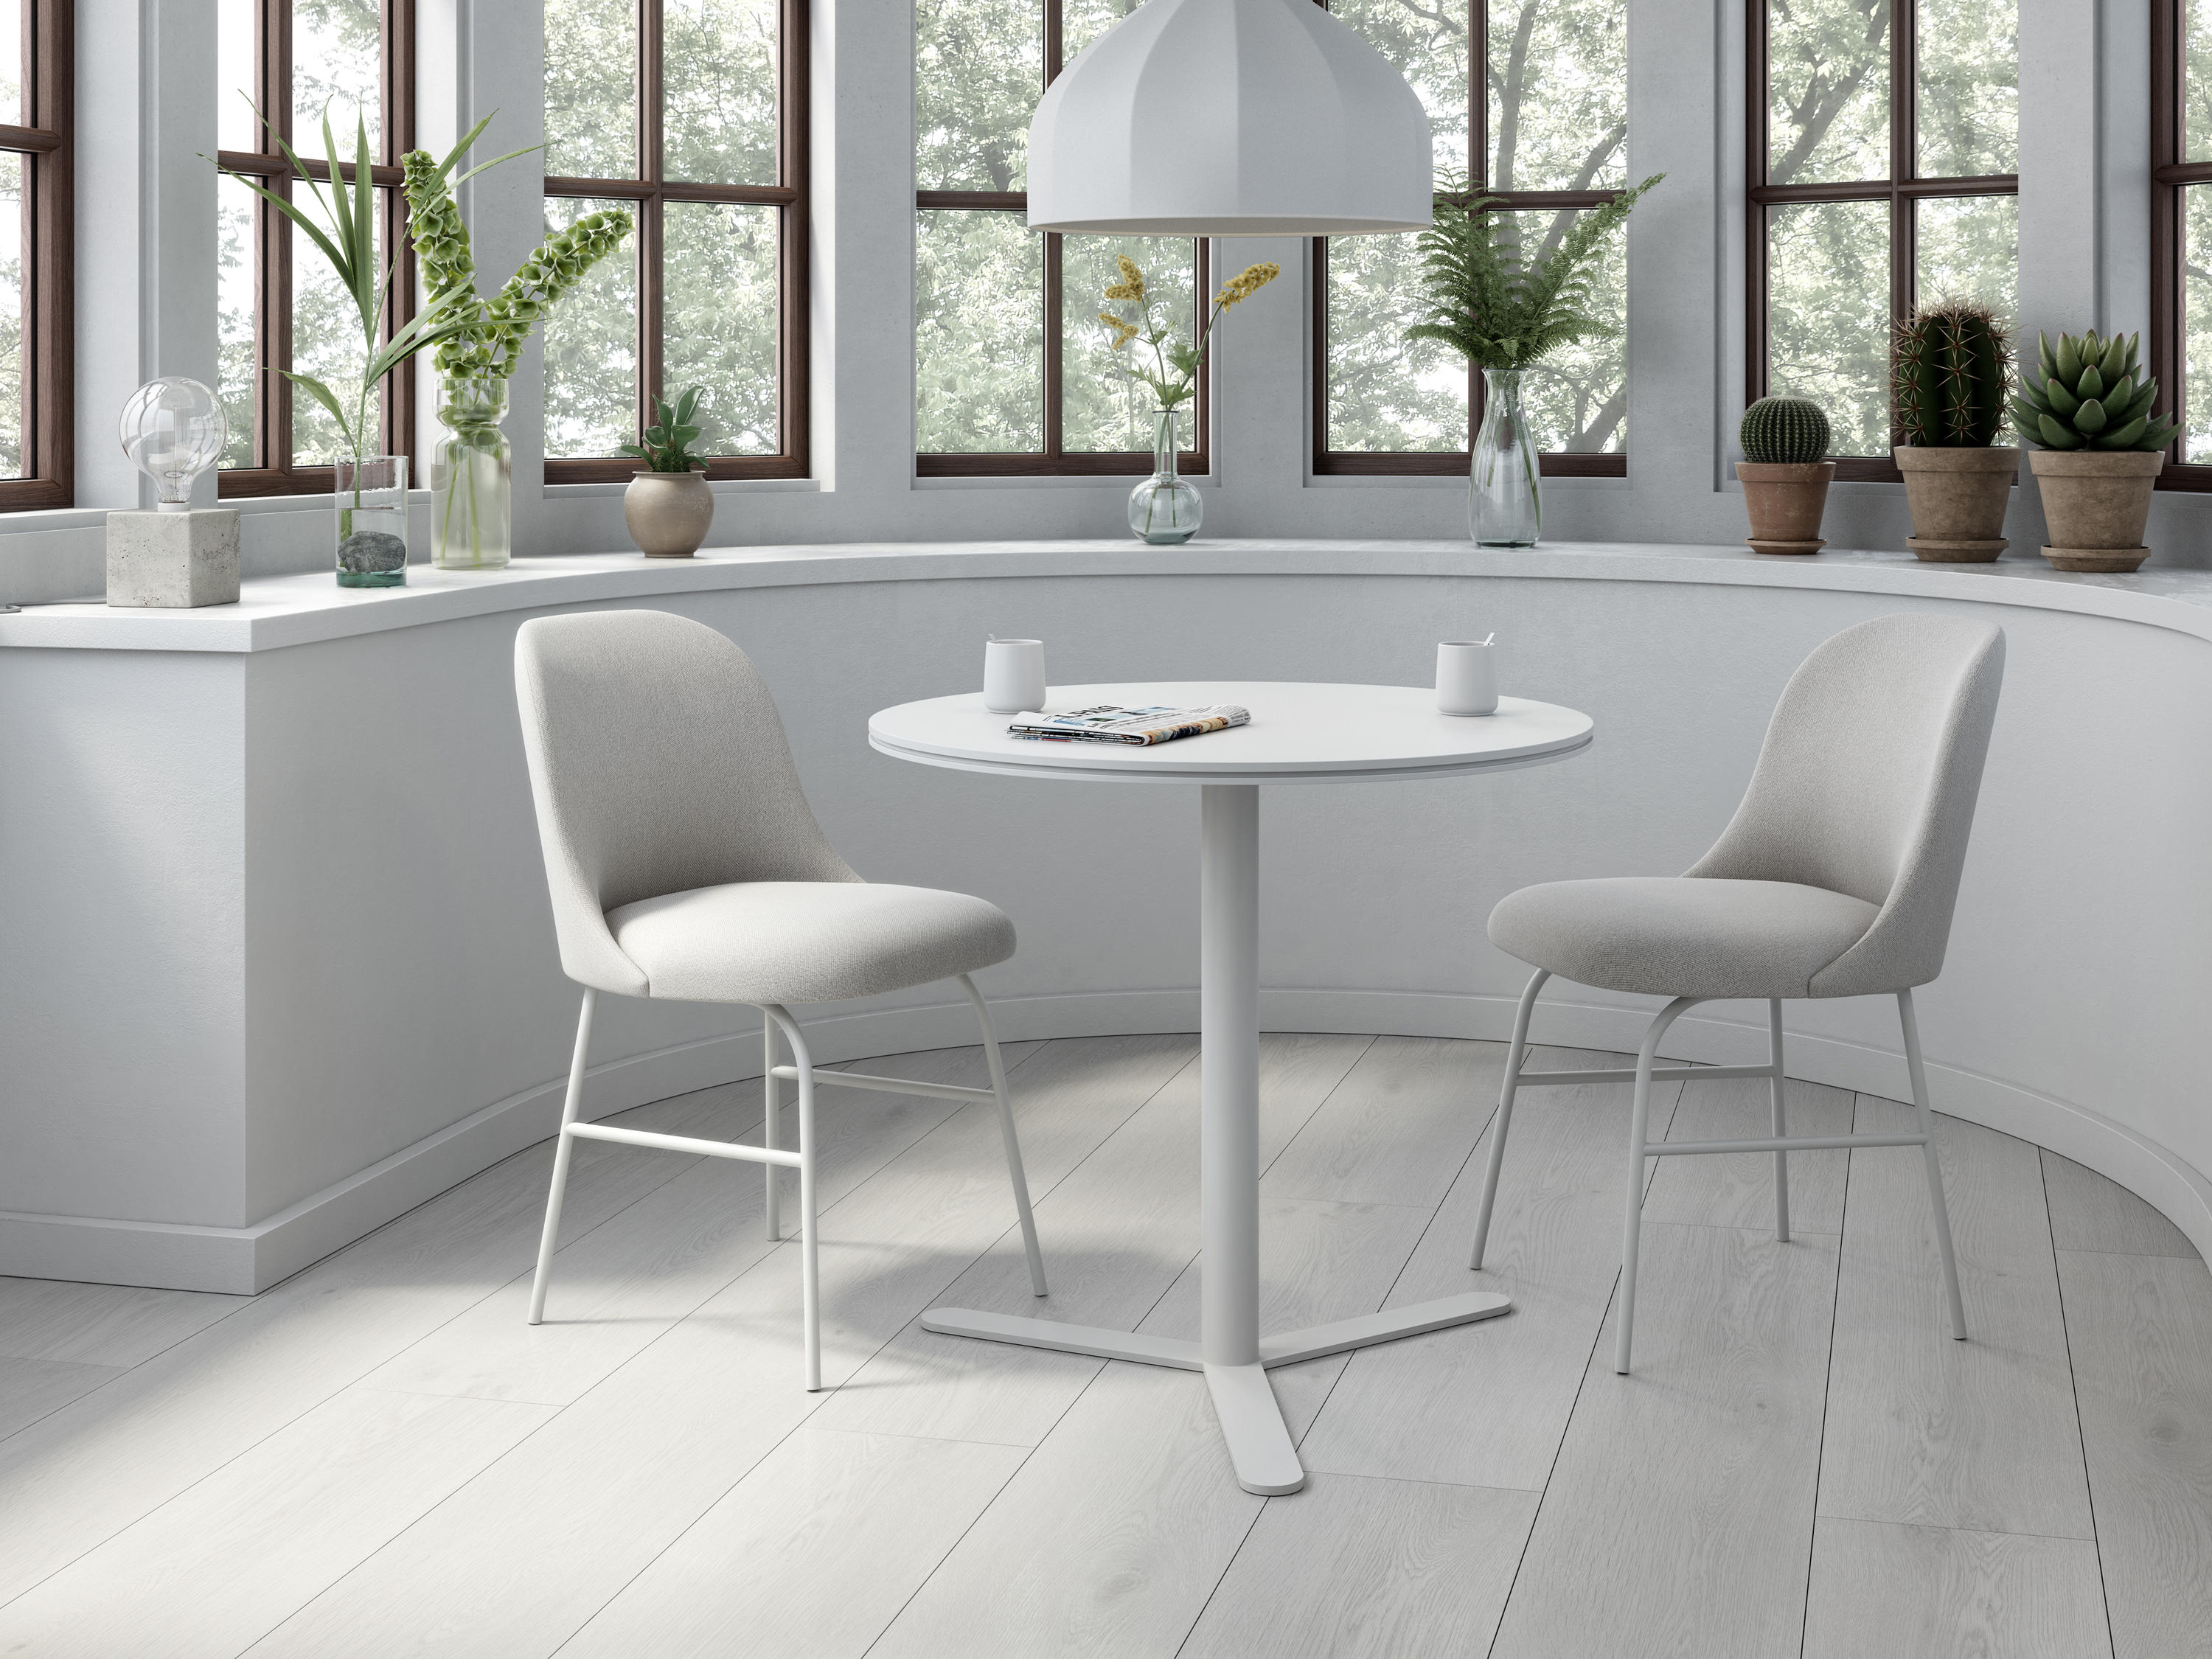 ALETA Chairs by Jaime Hayon for Viccarbe